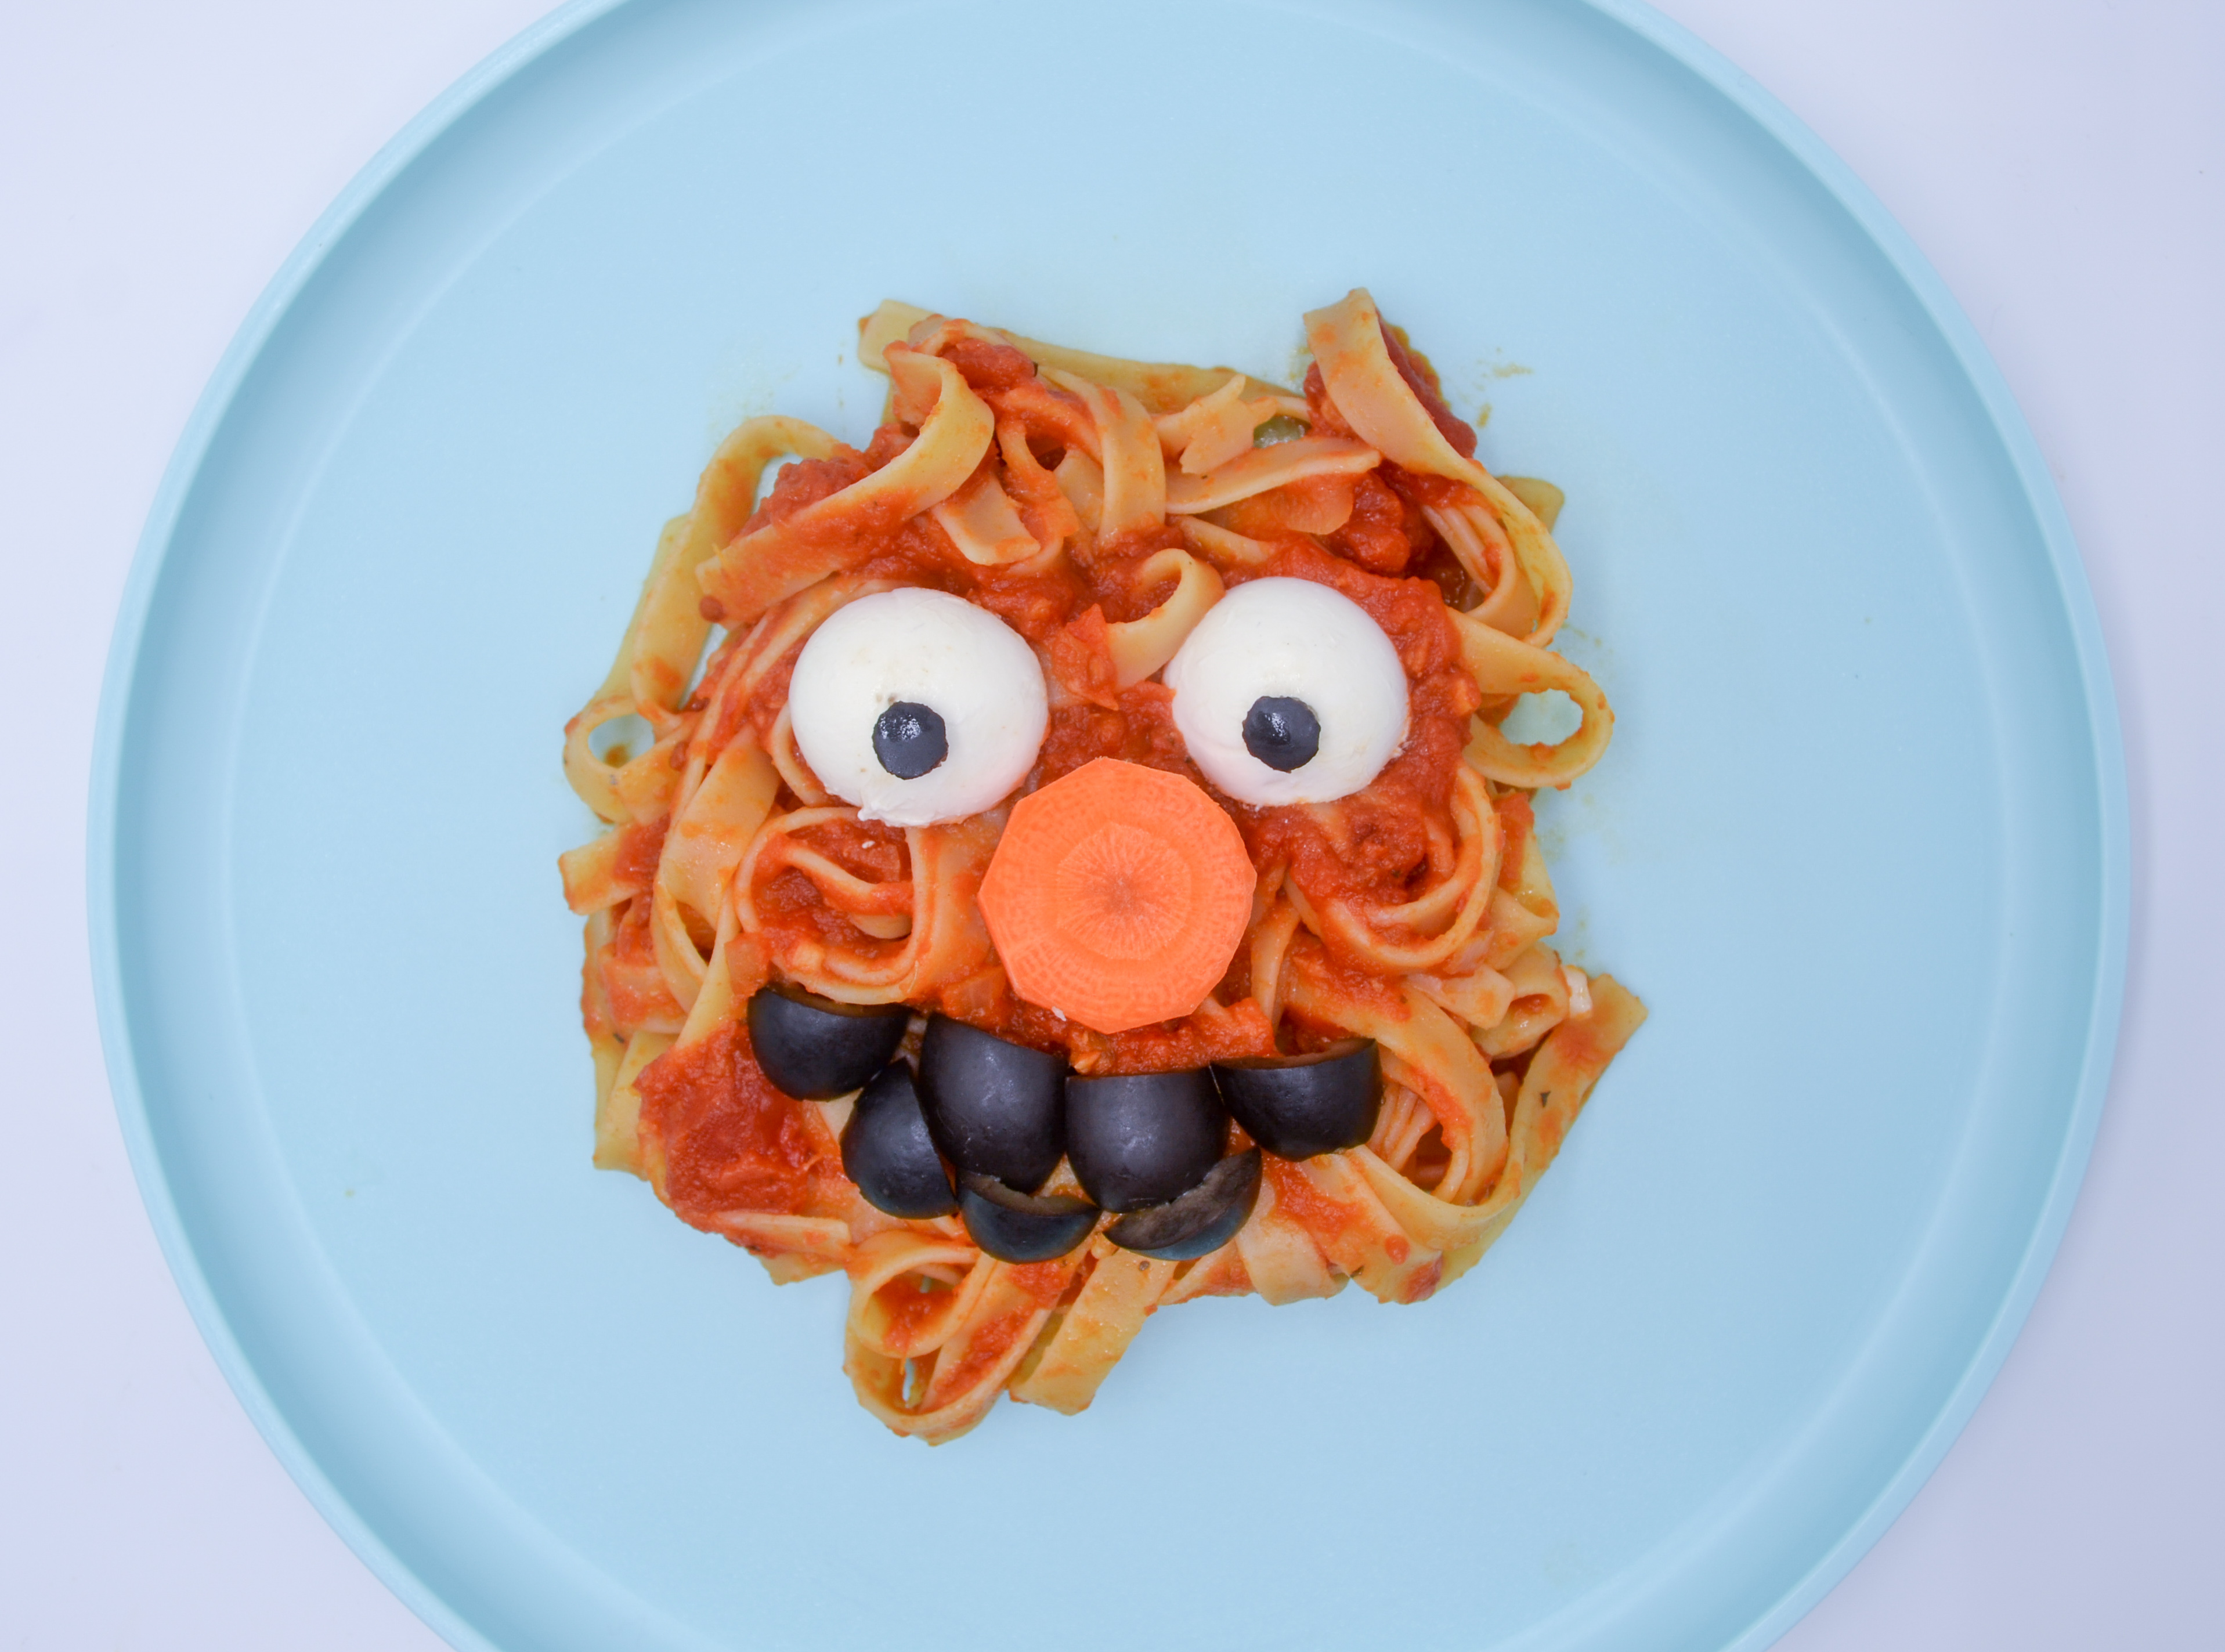 A pile of pasta covered in hidden veggie spaghetti sauce with toppings to make it look like Elmo on a light blue plate